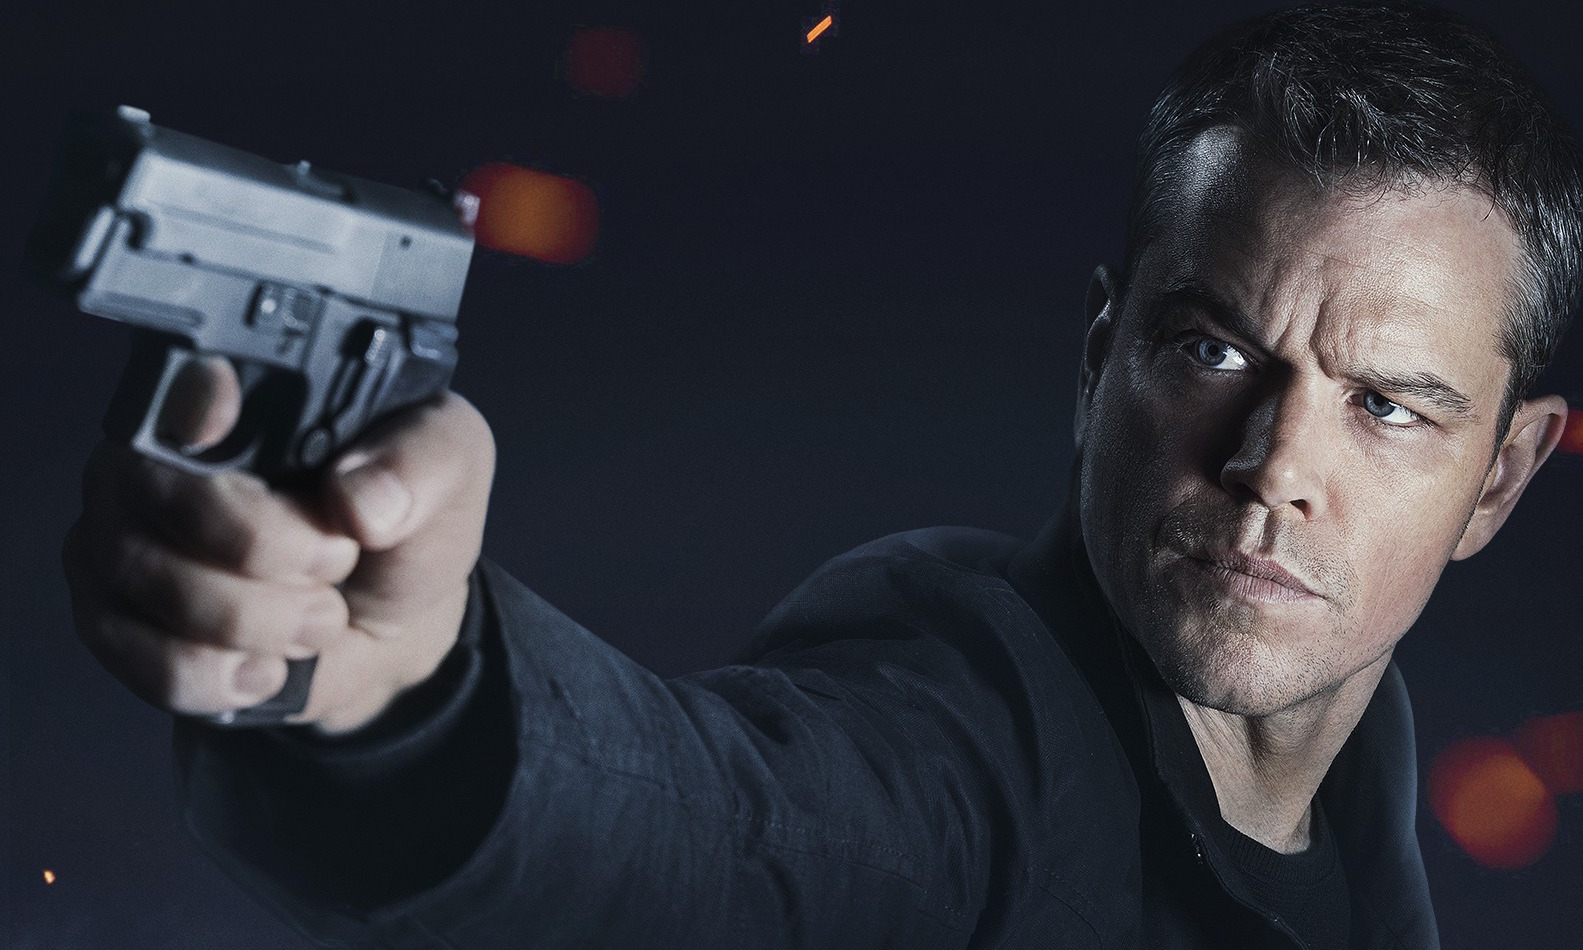 'Jason Bourne' Review: Entertaining even if repetitive